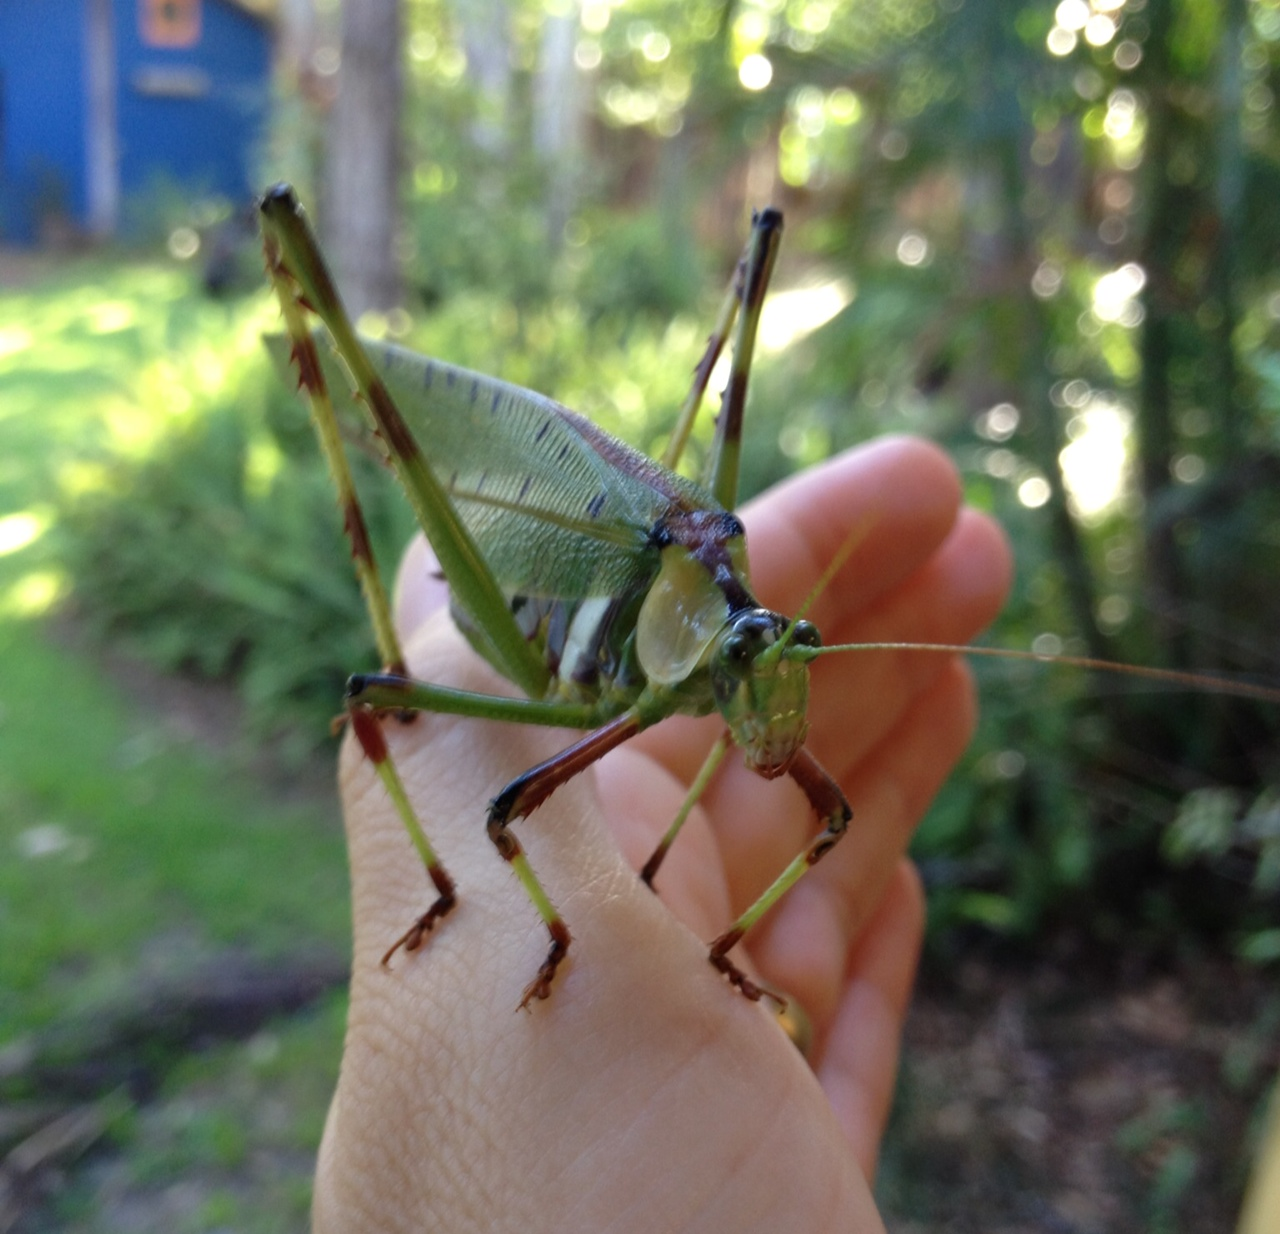 leaves and grasshopper relationship questions